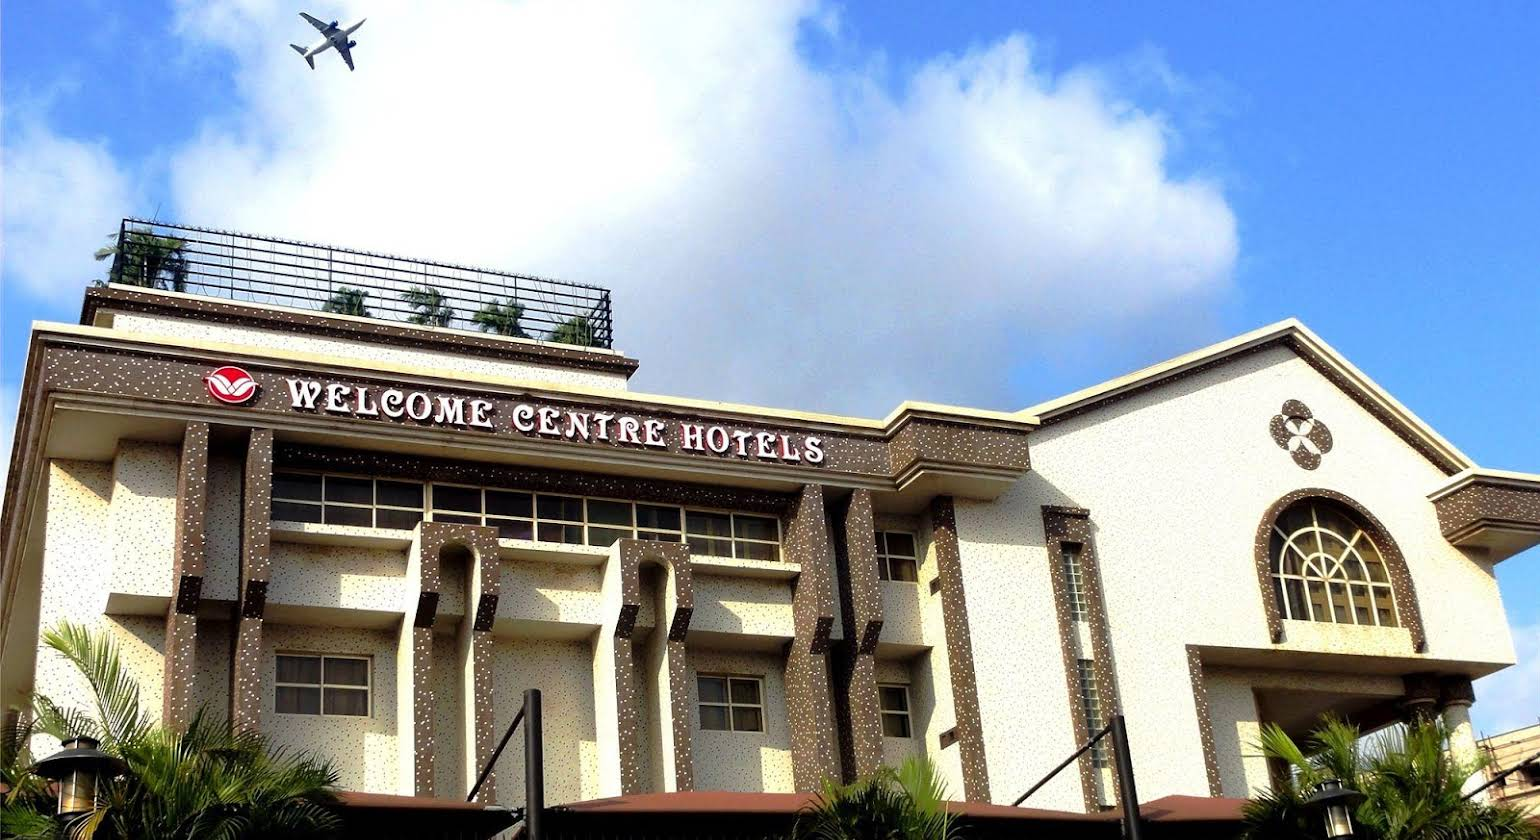 Welcome Centre & Hotels